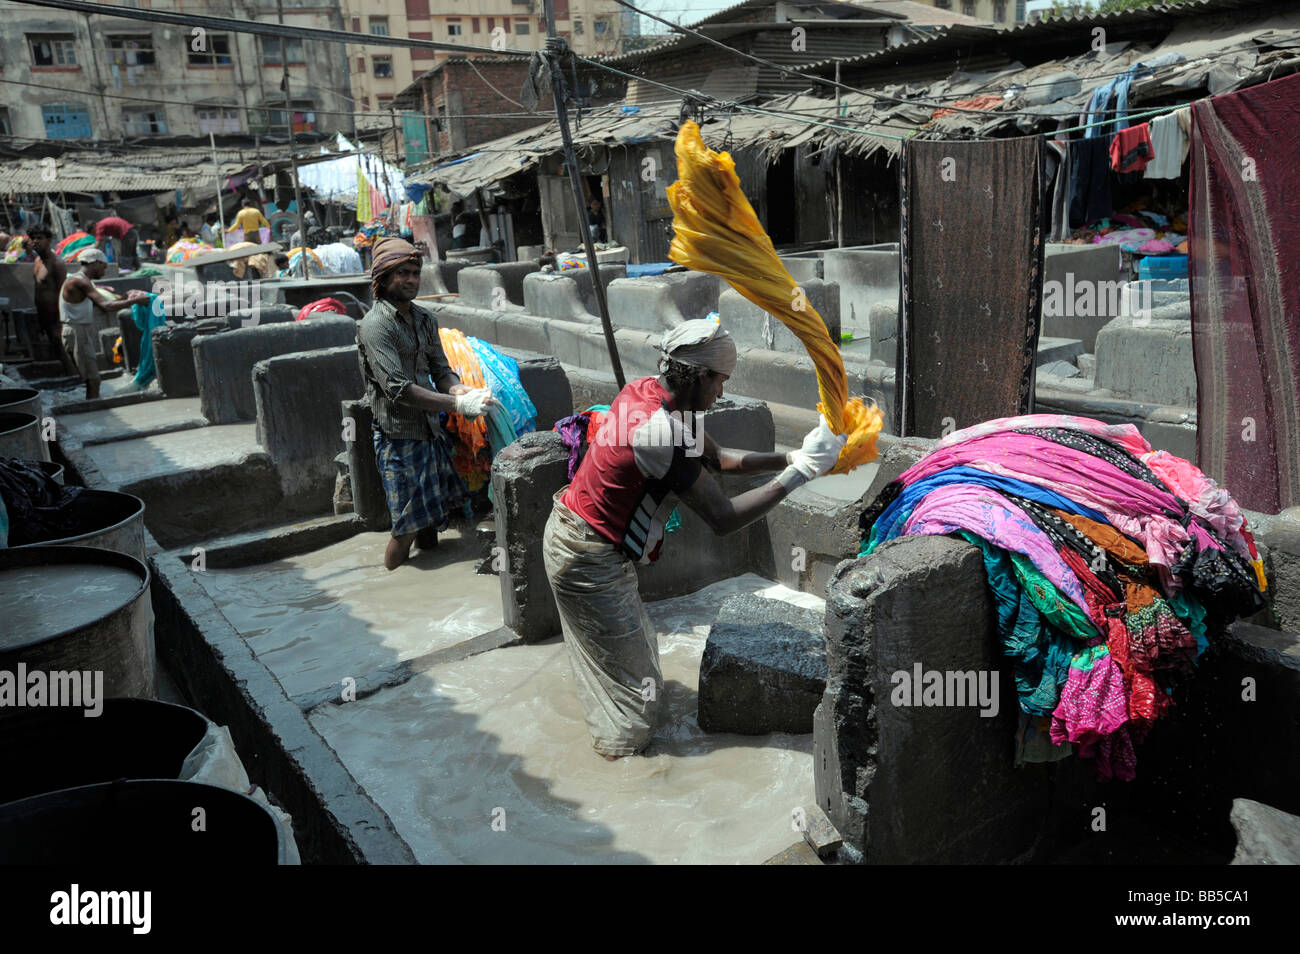 Dhobi flogging laundry in Dhobi Ghats, Mumbai, India - Stock Image